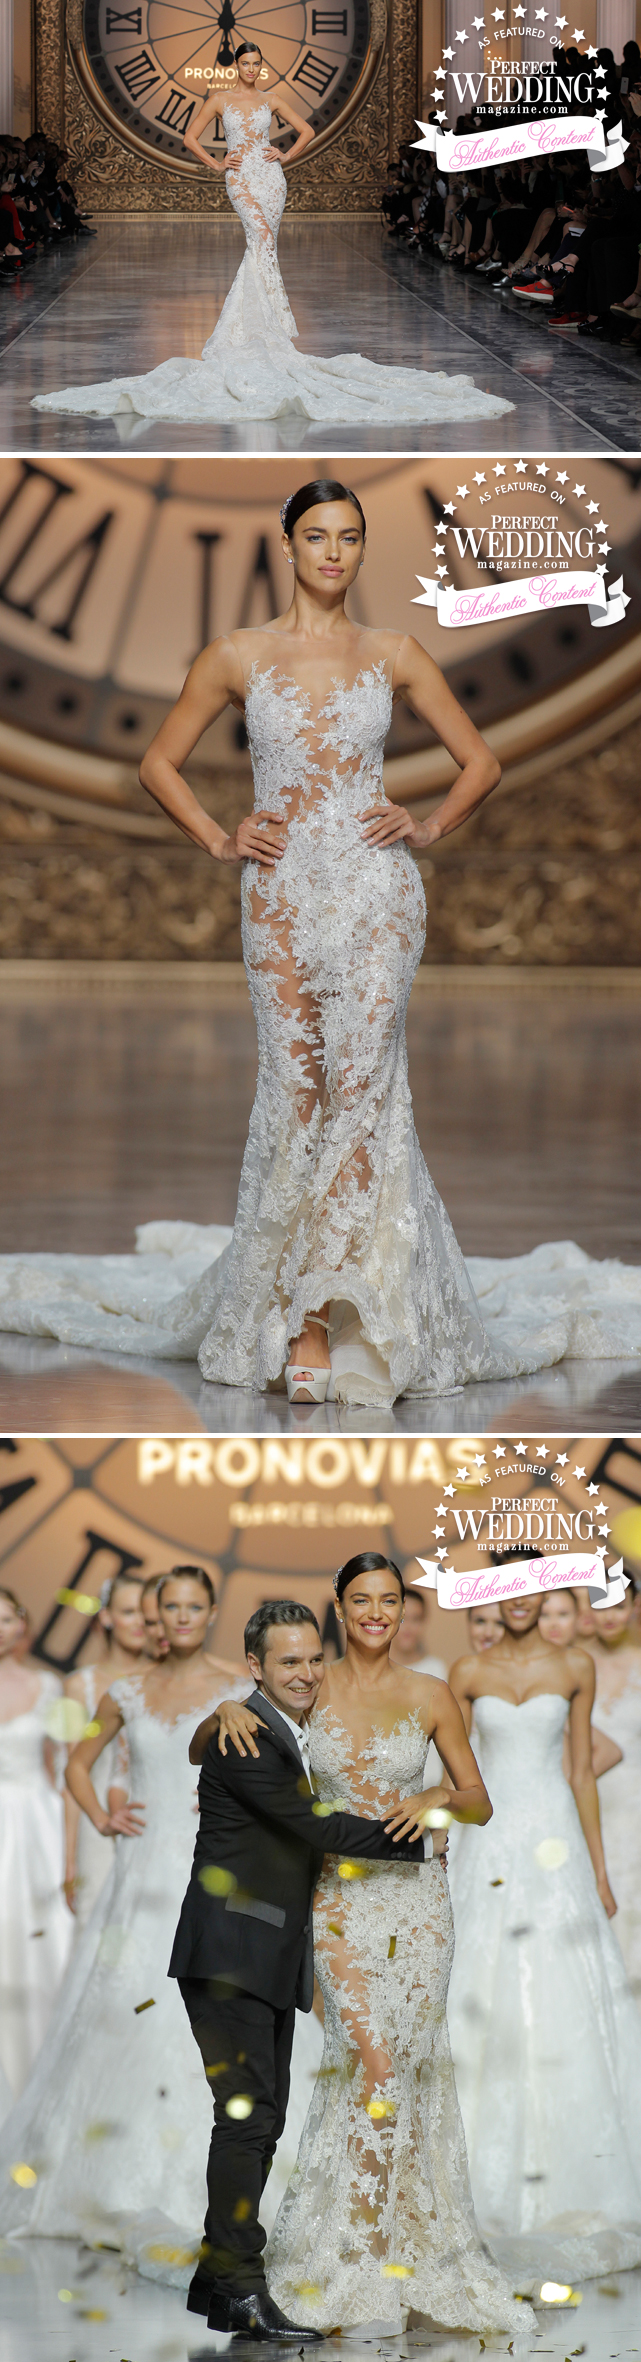 PRONOVIAS FASHION SHOW 2016,Pronovias, Pronovias Atelier 2016 Collection, Fashion, Bridal Trends, Perfect wedding Magazine